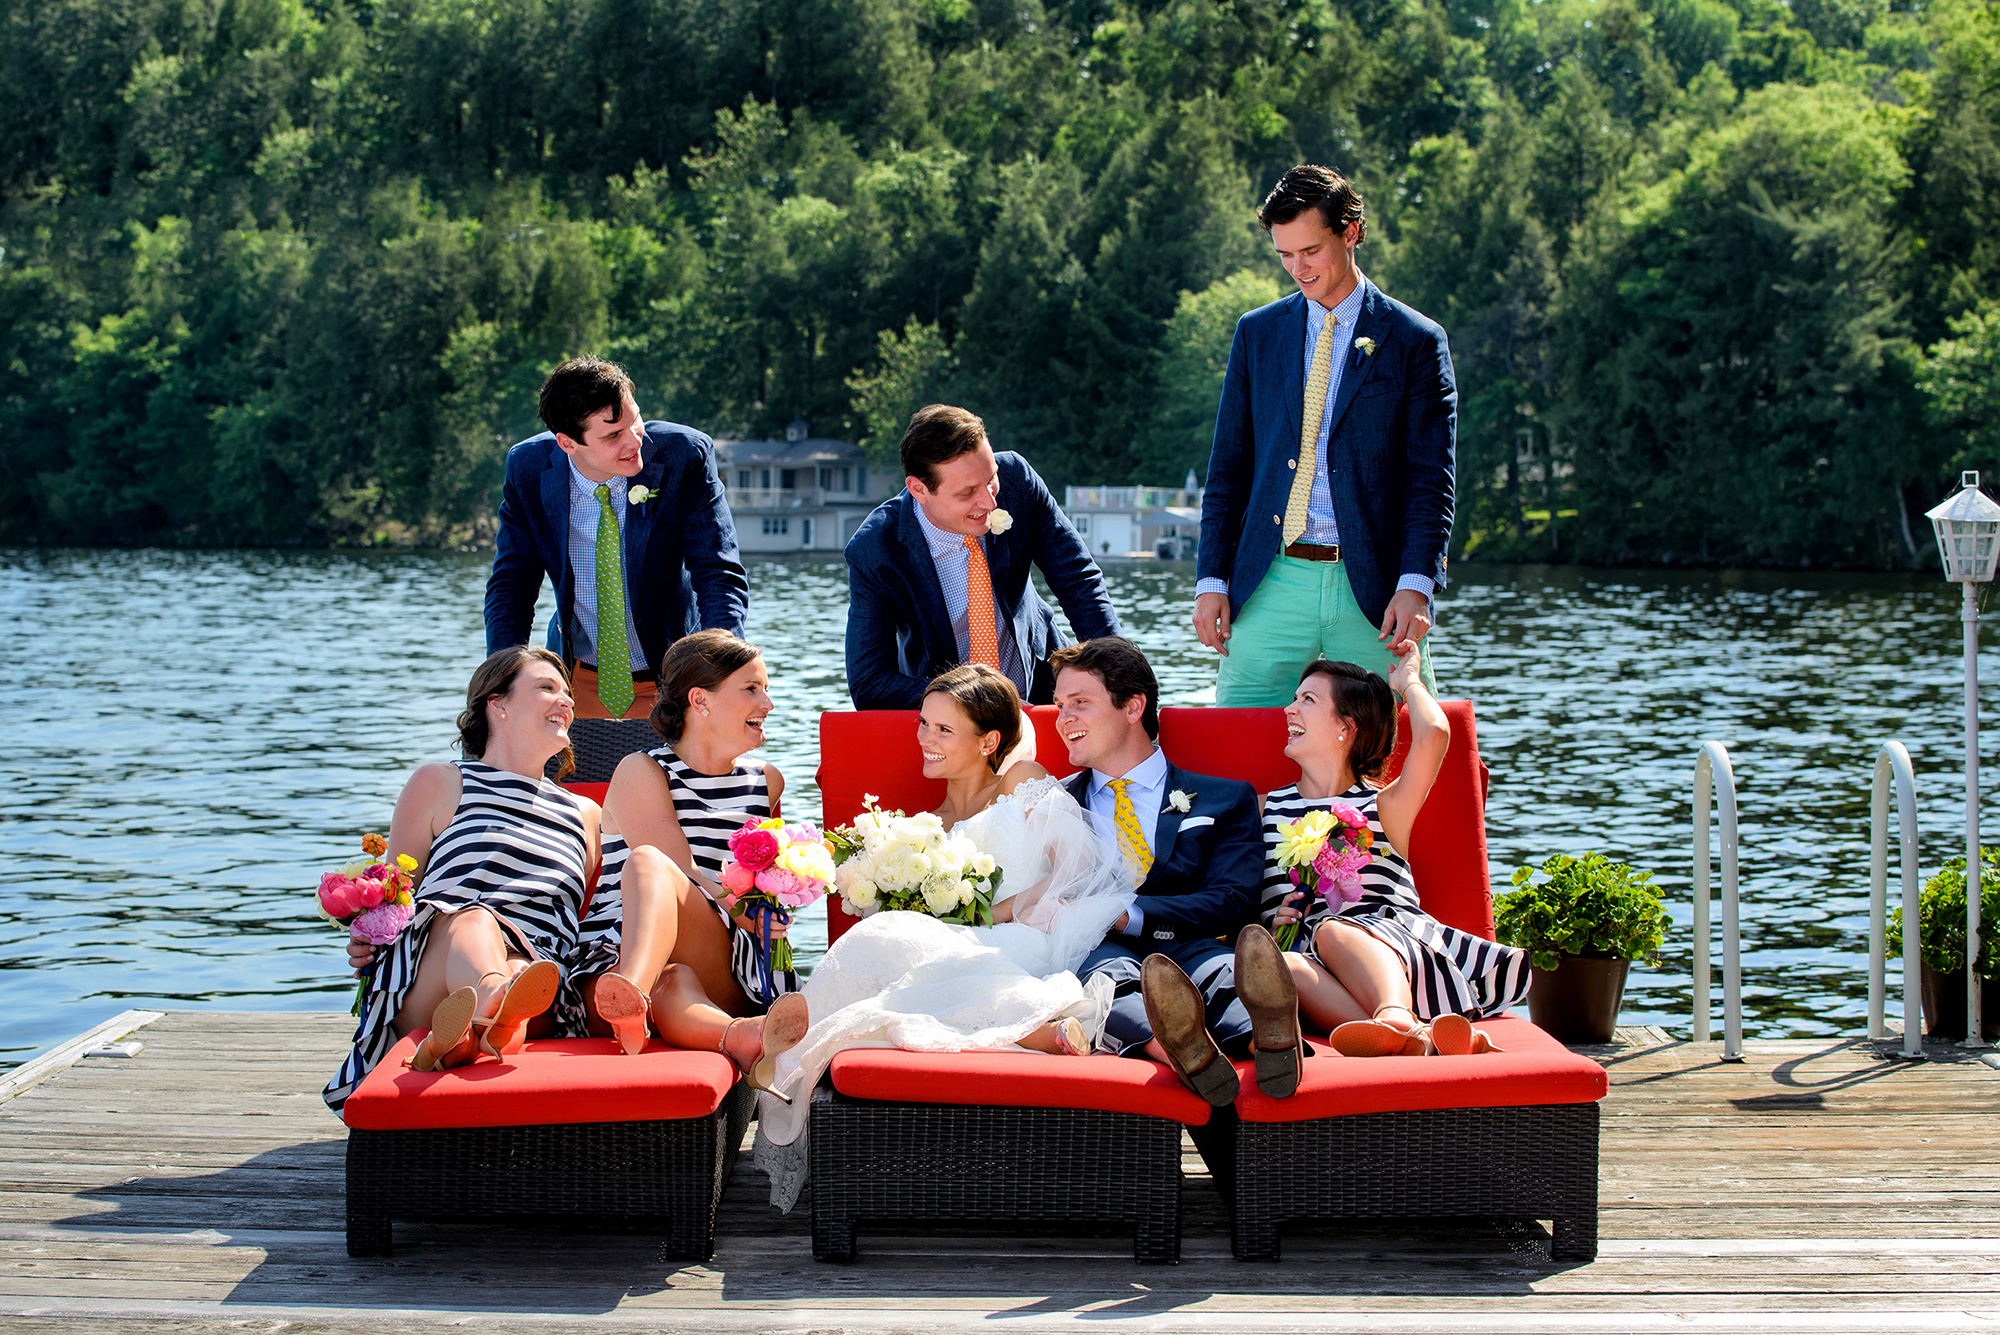 Bridal party b y the lake - photo by Storey Wilkins Photography